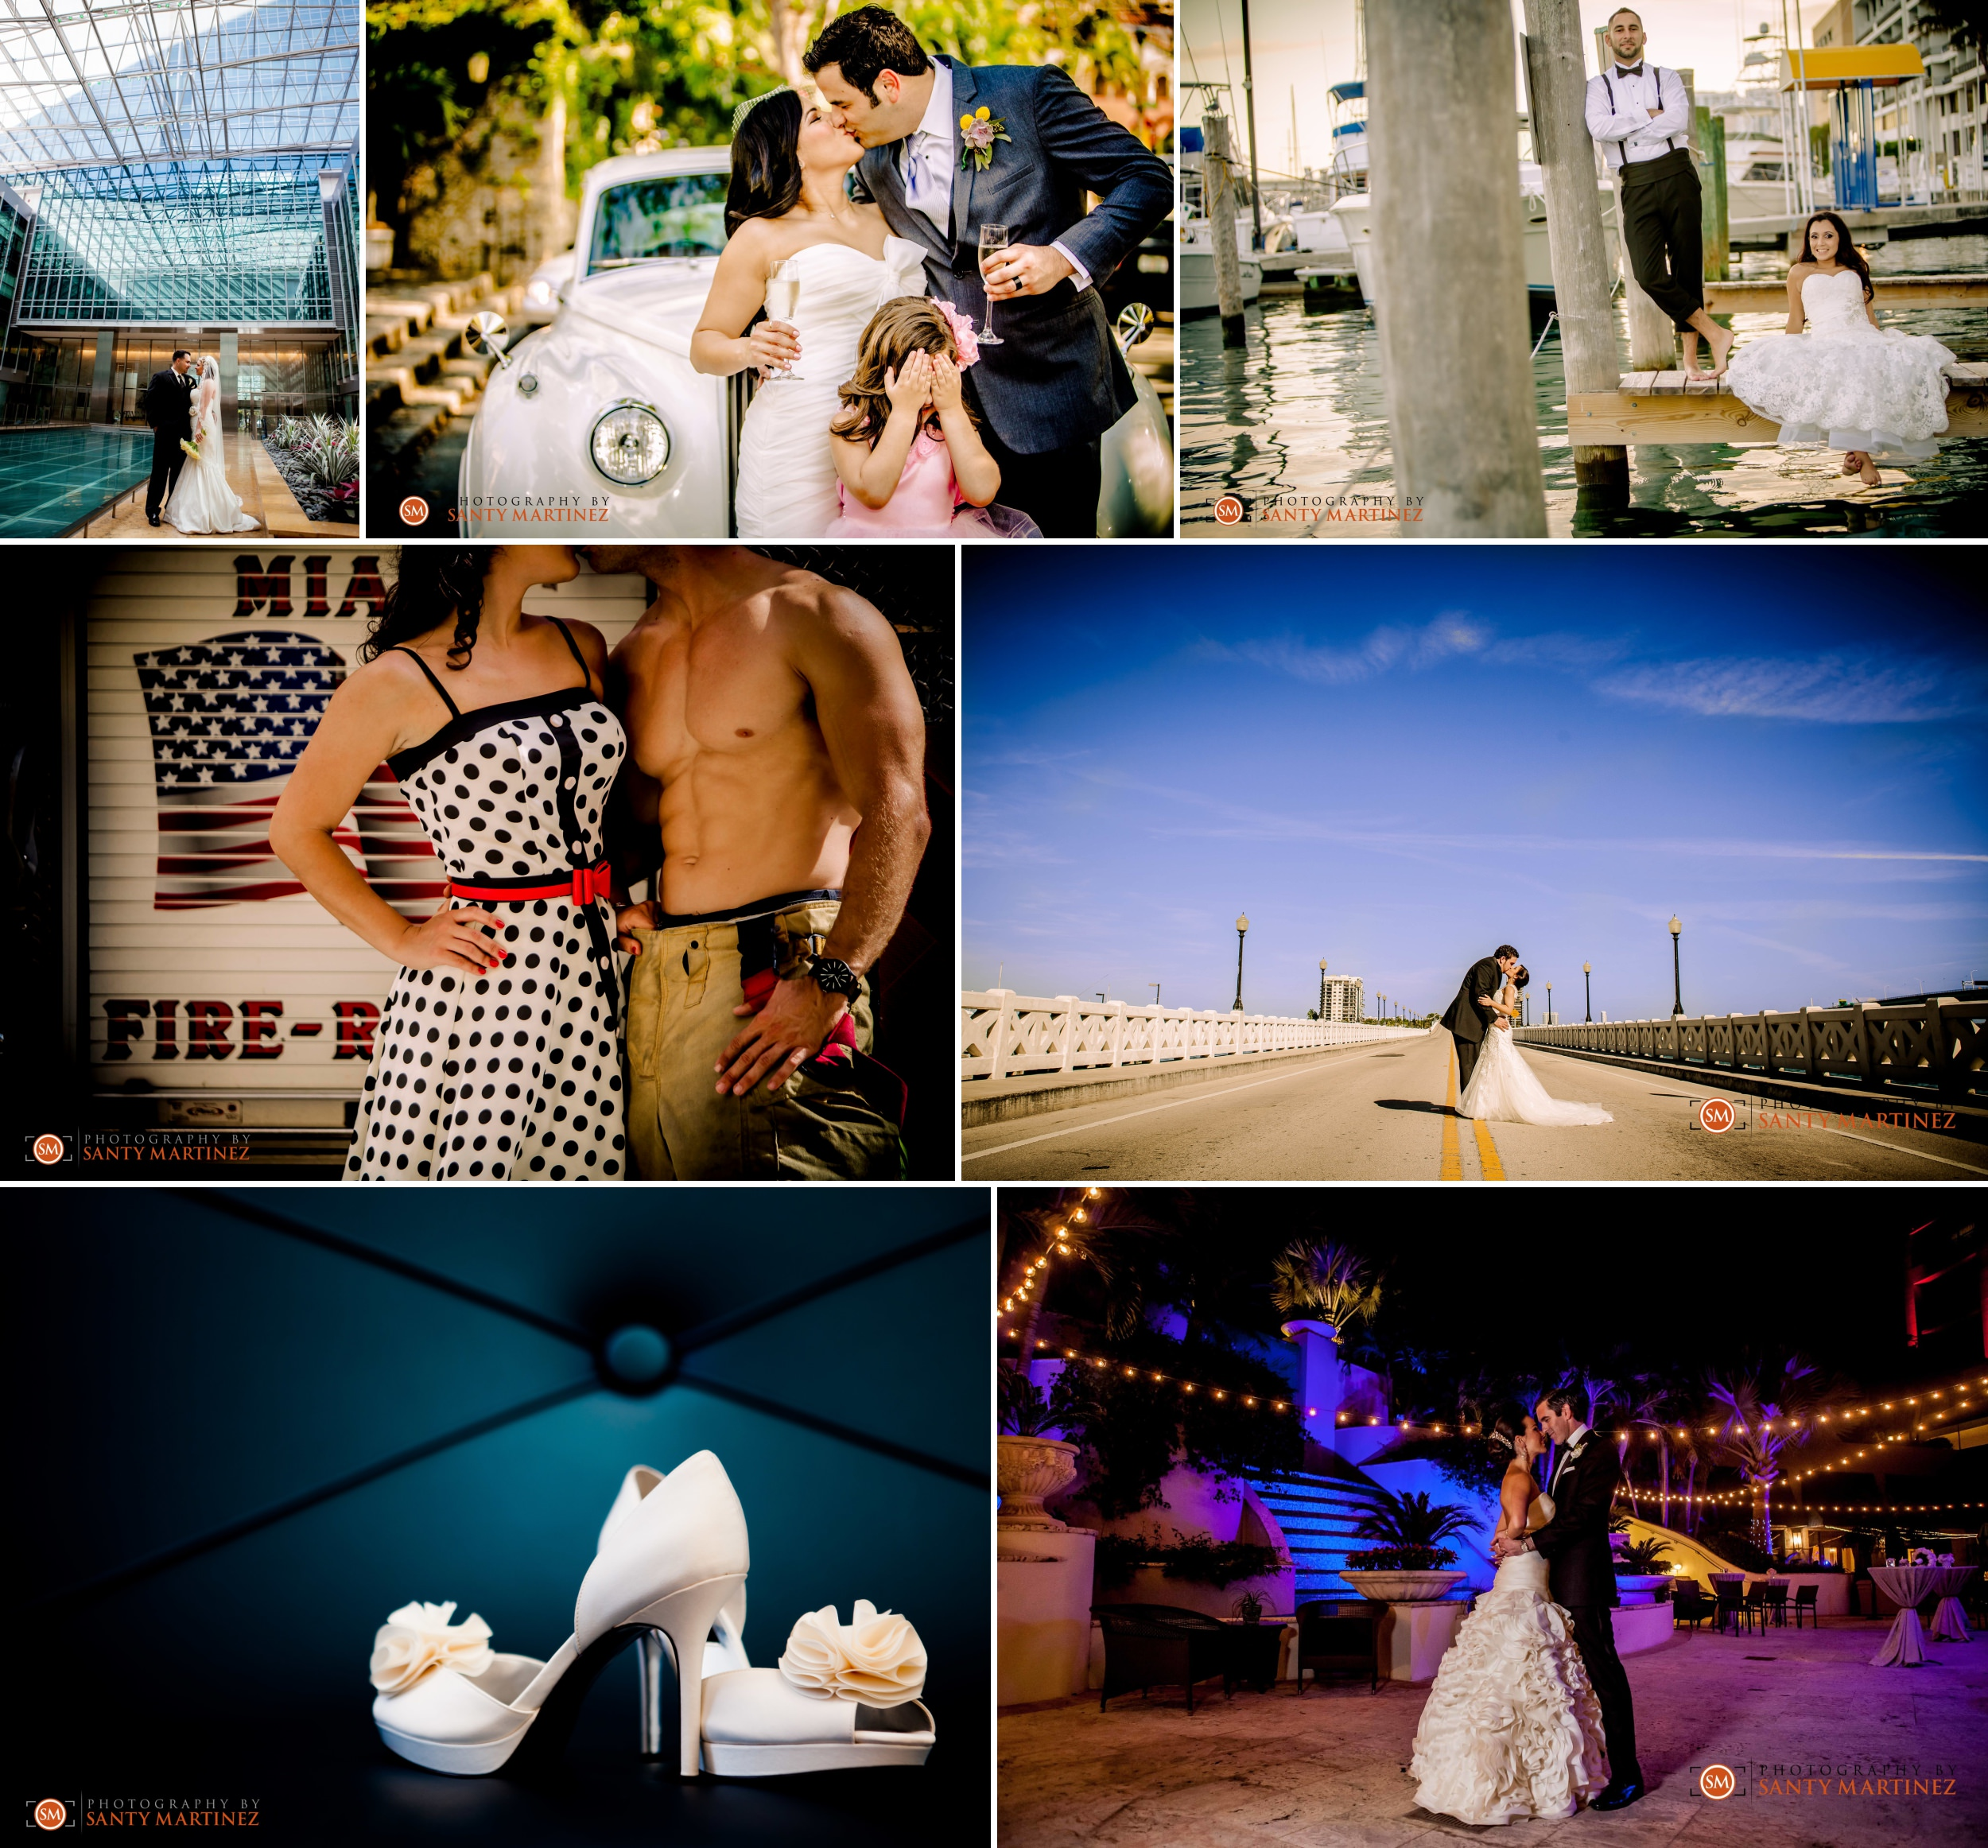 Santy Martinez - Photography - Miami Wedding Photographers 16.jpg